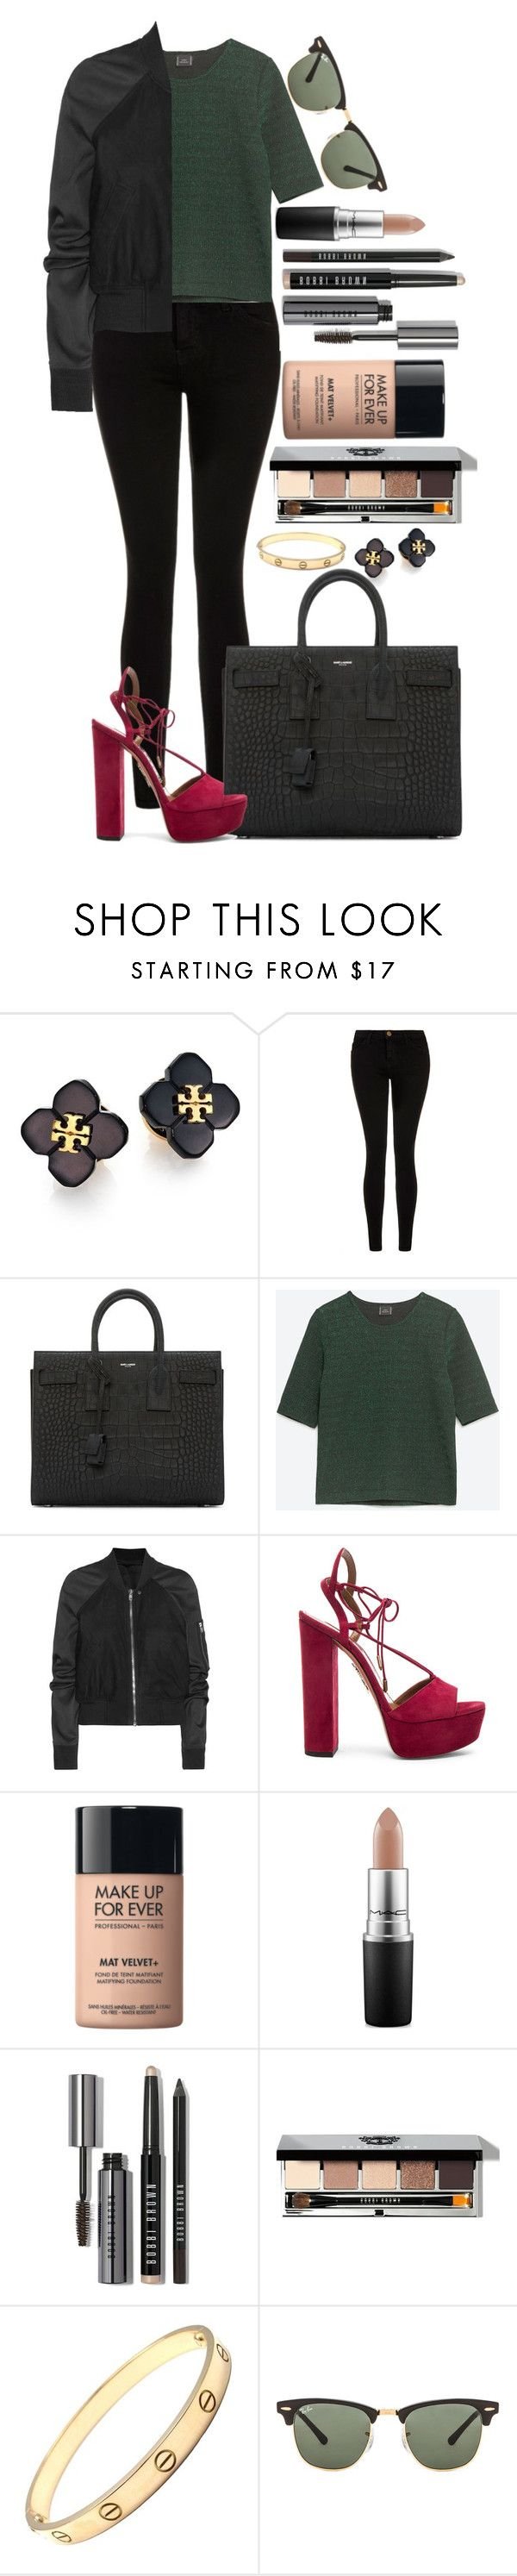 """""""Untitled #1456"""" by fabianarveloc ❤ liked on Polyvore featuring Tory Burch, Current/Elliott, Yves Saint Laurent, Zara, Rick Owens, Aquazzura, MAKE UP FOR EVER, MAC Cosmetics, Bobbi Brown Cosmetics and Cartier"""